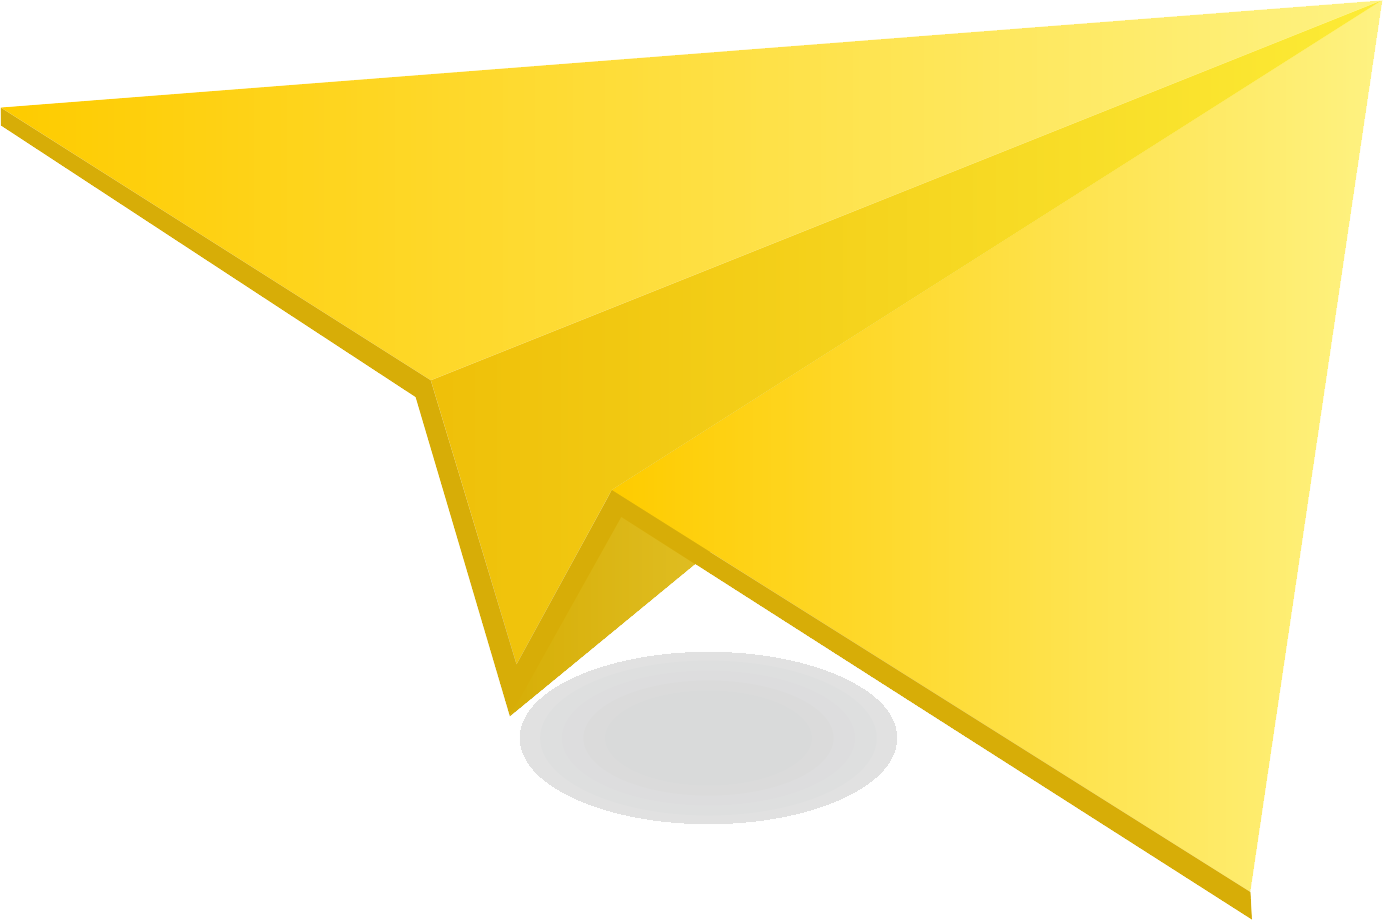 Pin about Paper plane on Yellow Paper Plane.